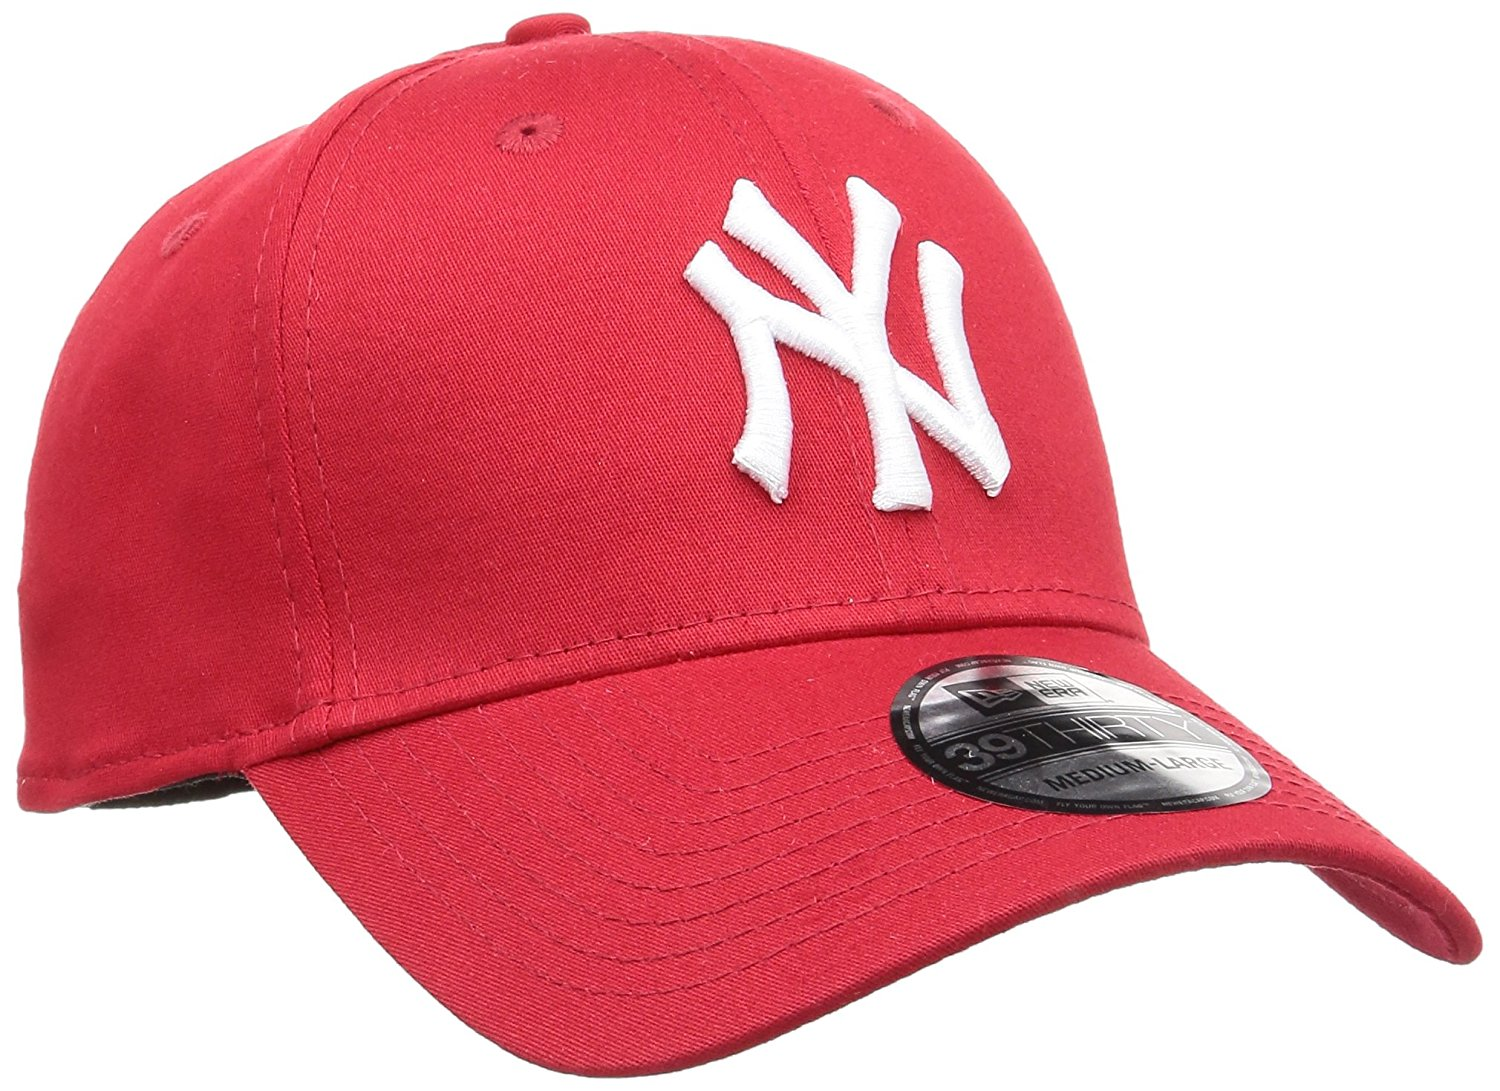 Buy New Era 39Thirty Flexfit Cap - NY YANKEES red   white in Cheap ... f52189835